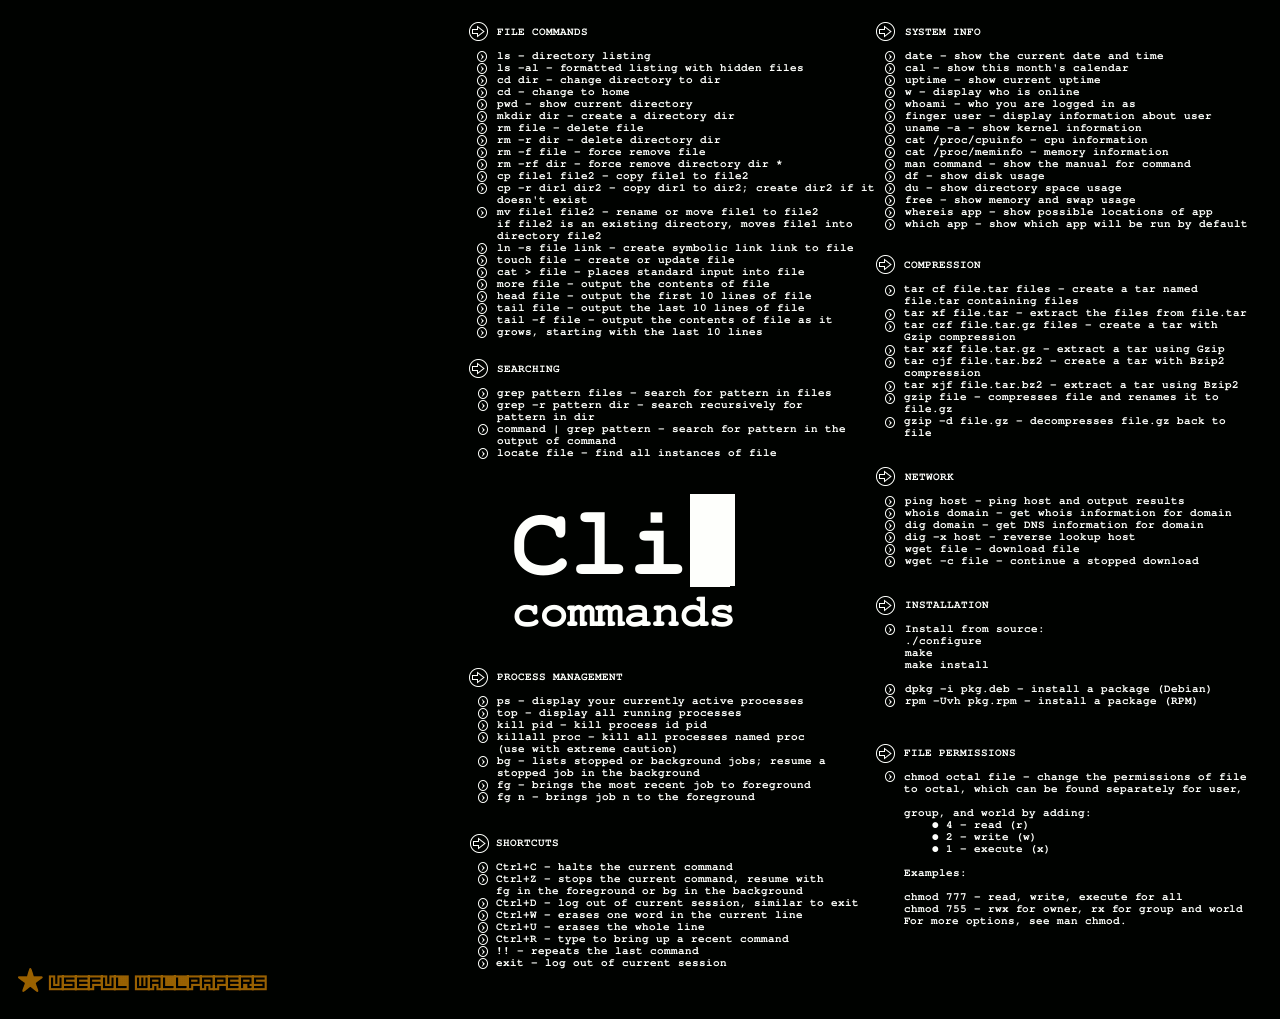 Linux commands, list of useful wall papers